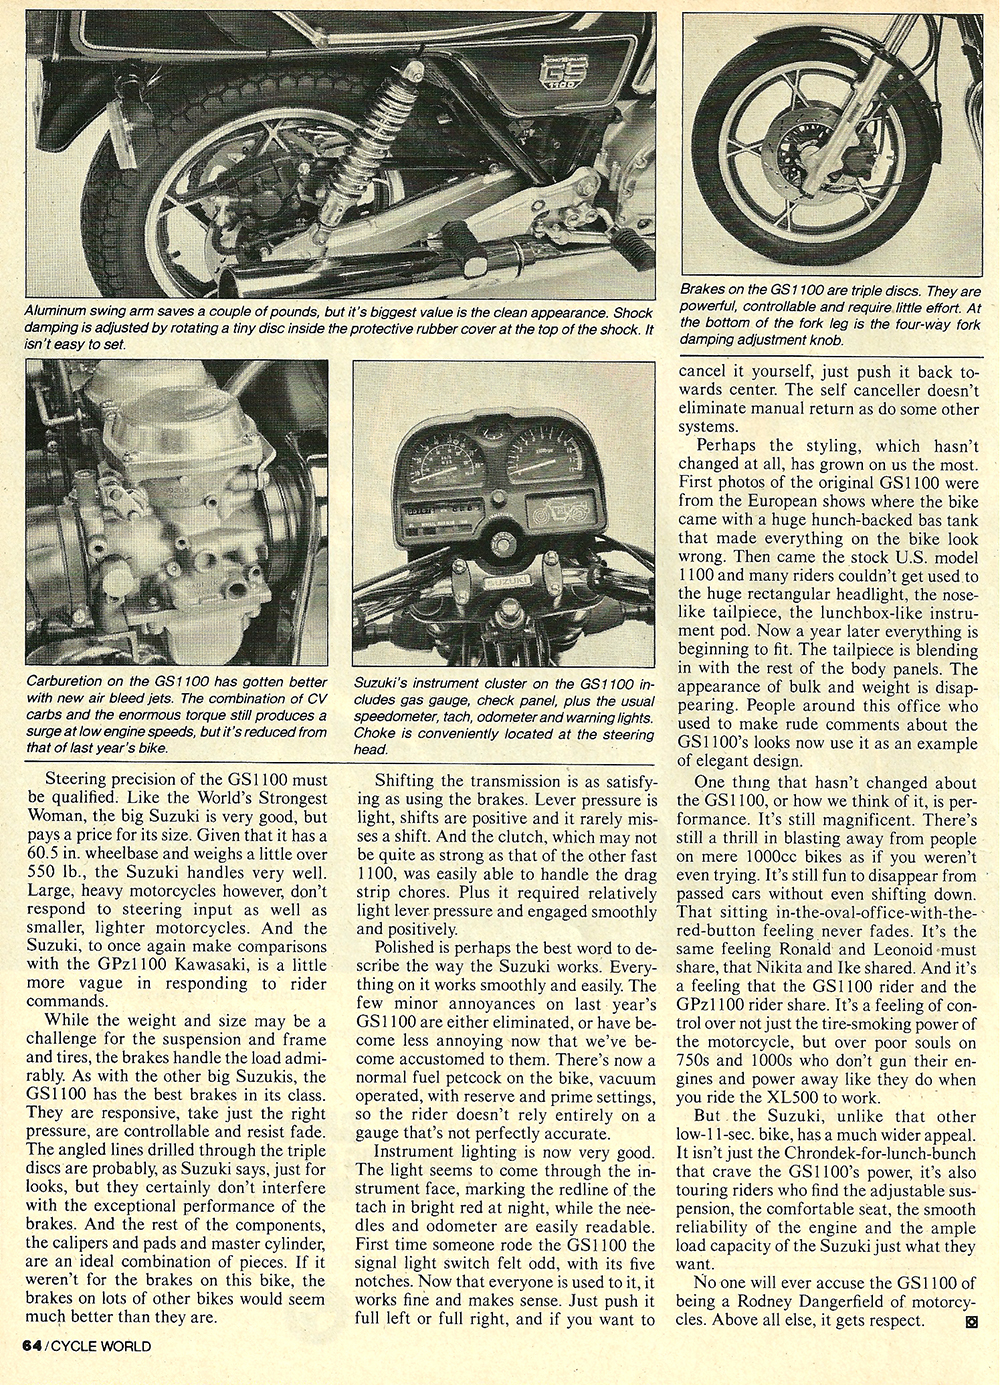 1981 Suzuki GS1100E road test 4.jpg